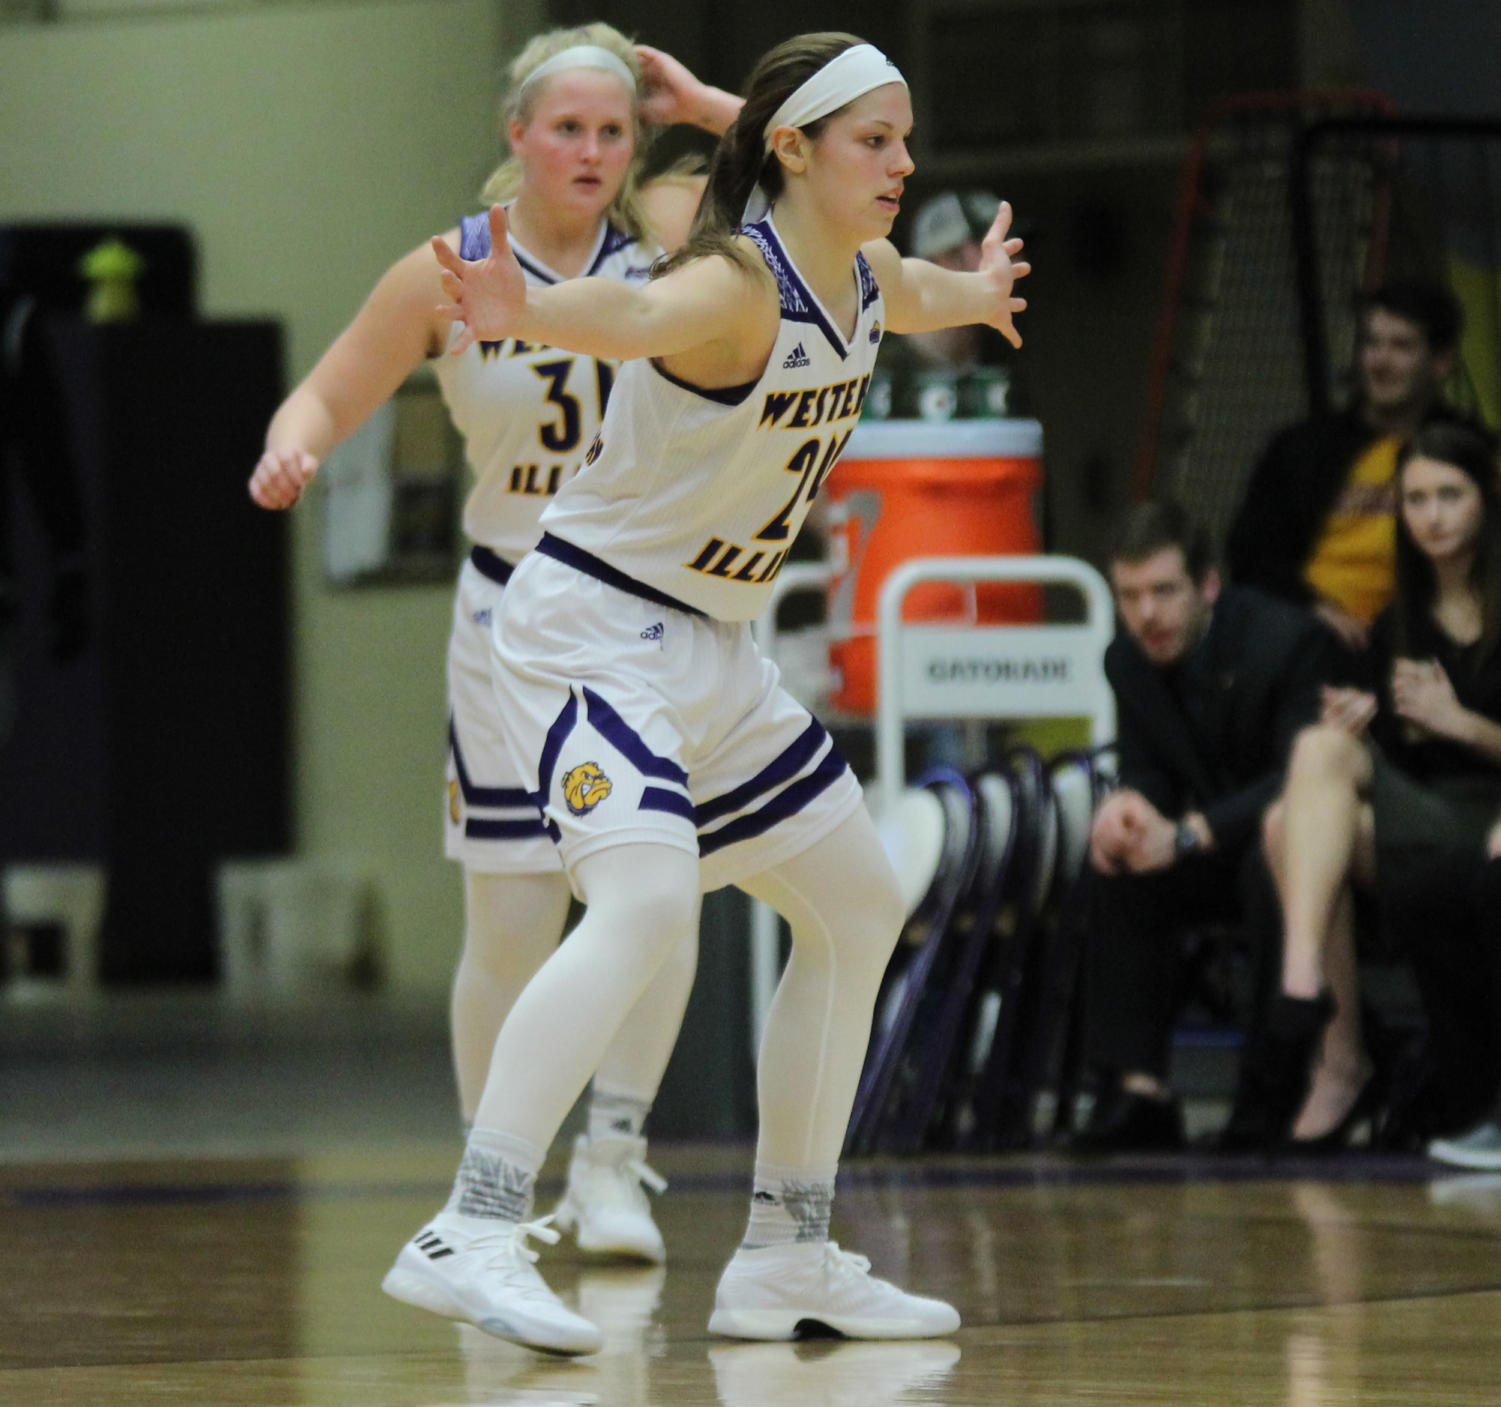 Taylor Higginbotham in her defensive stance at a home game inside Western Hall last season.